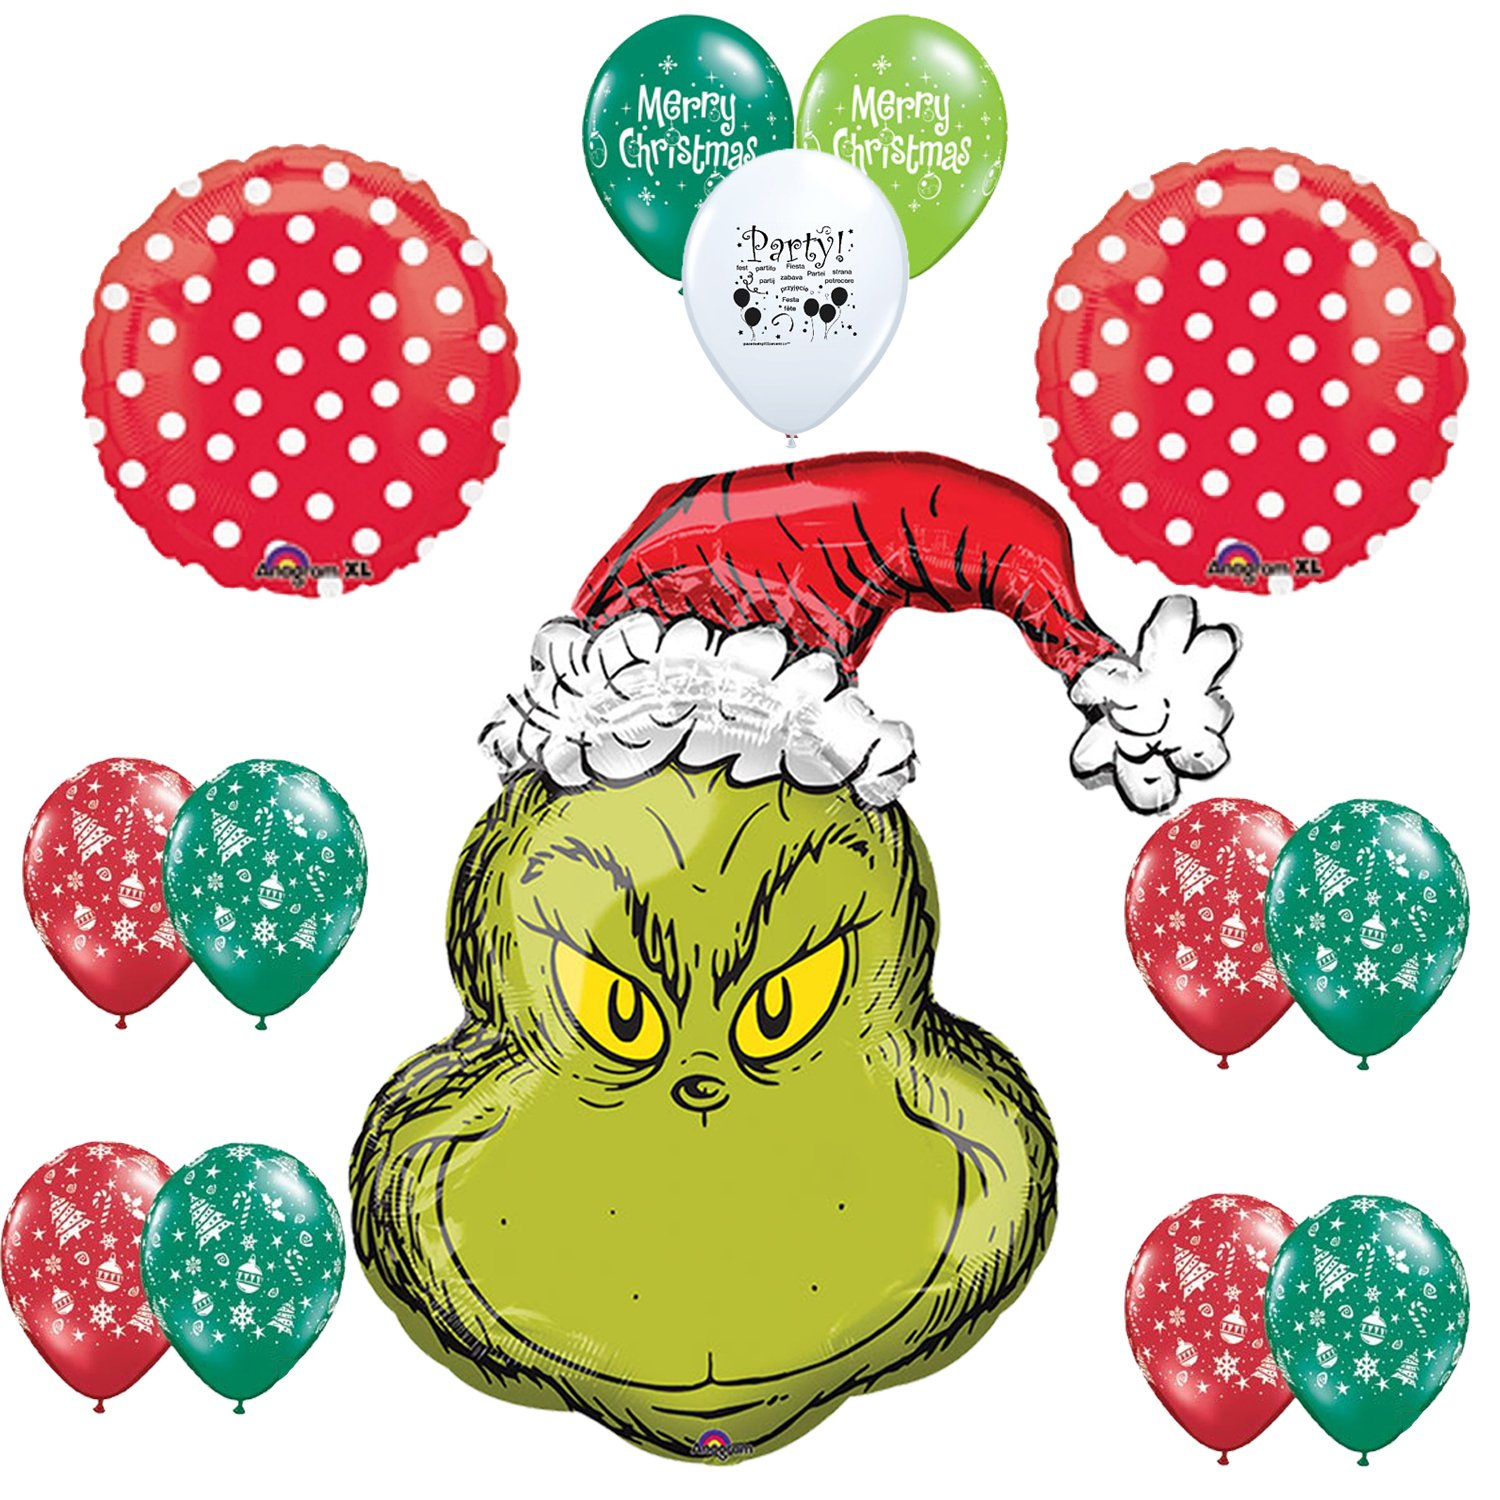 Amazoncom The Grinch Christmas Party Supplies Balloon Decorations Health &